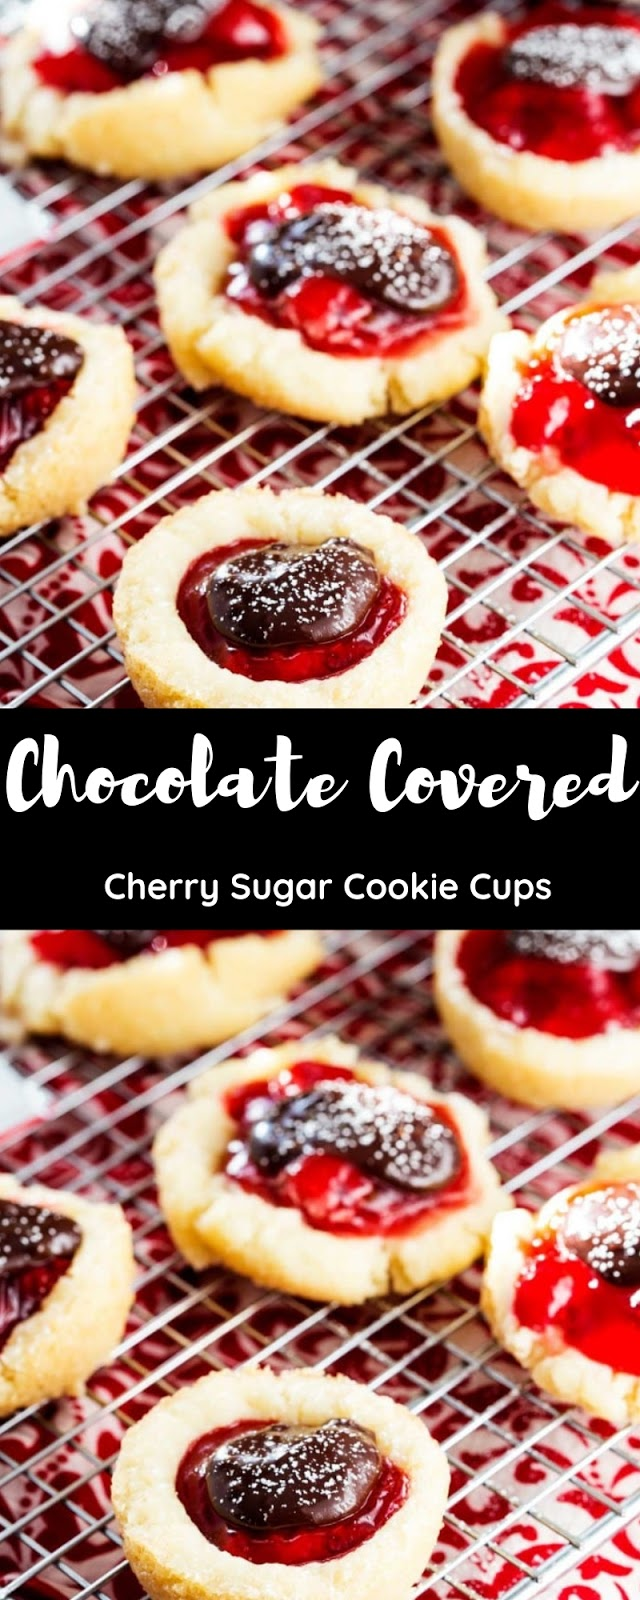 Chocolate Covered Cherry Sugar Cookie Cups